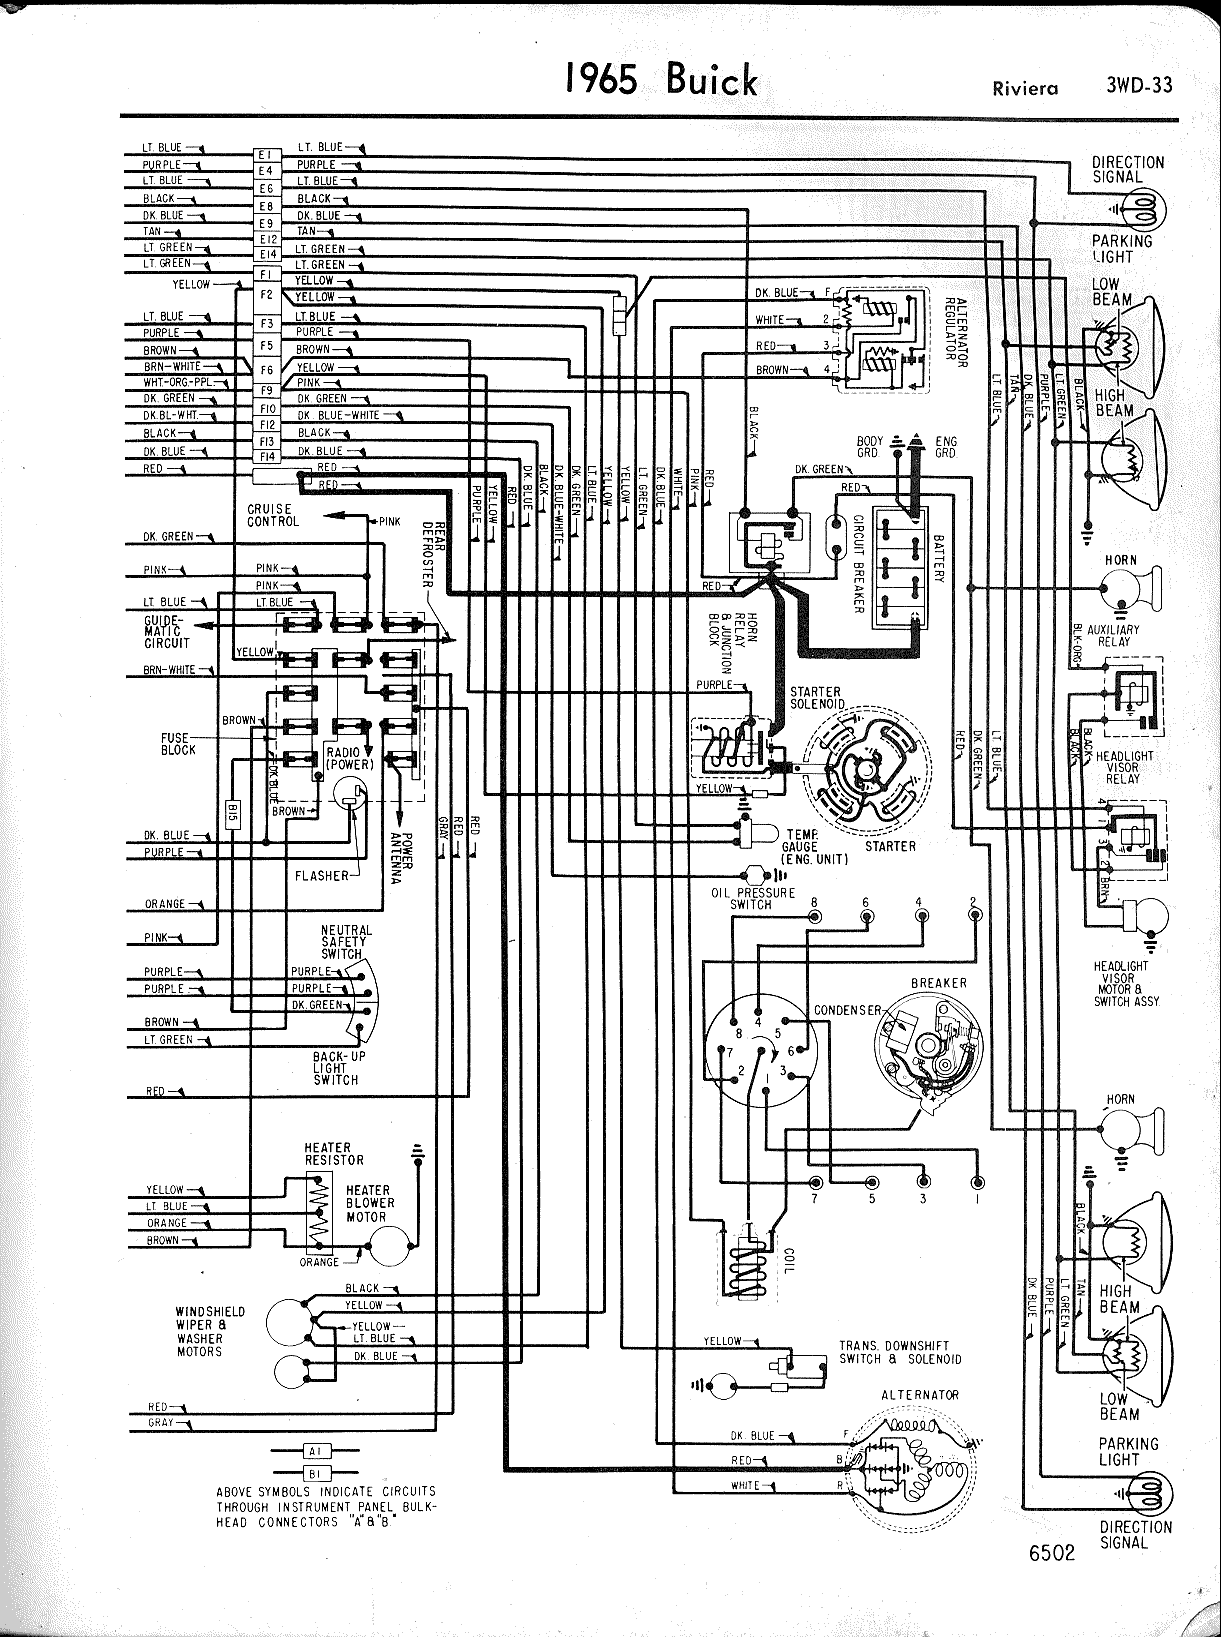 Fuse Box Diagram Additionally Wiring Diagram For 1965 Ford